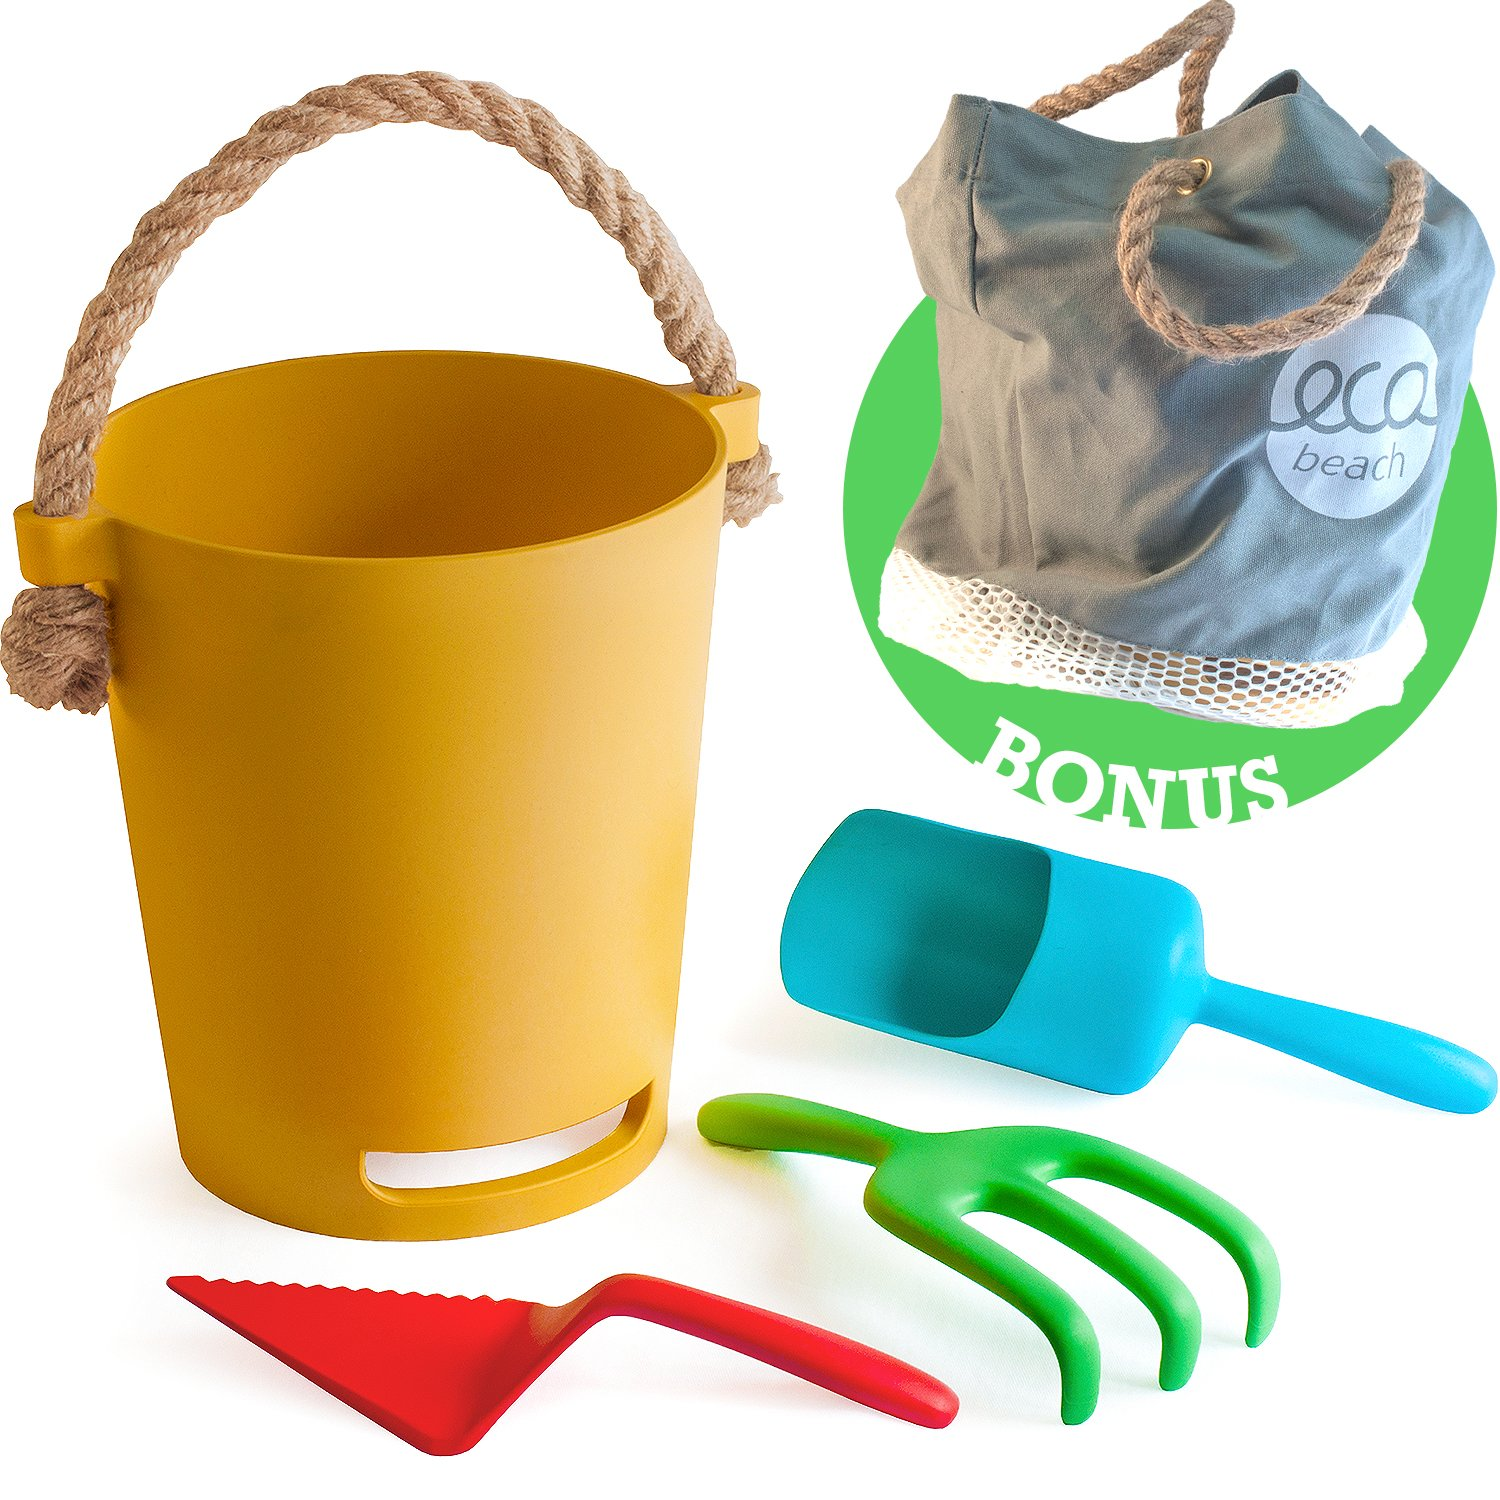 Eco Beach Toy Set for Toddlers & Kids | Biodegradable Natural Bamboo Fiber Sand Toys | Includes Carry Tote Bag with Mesh Base | Non Plastic Beach Toys for Boys & Girls of Any Age